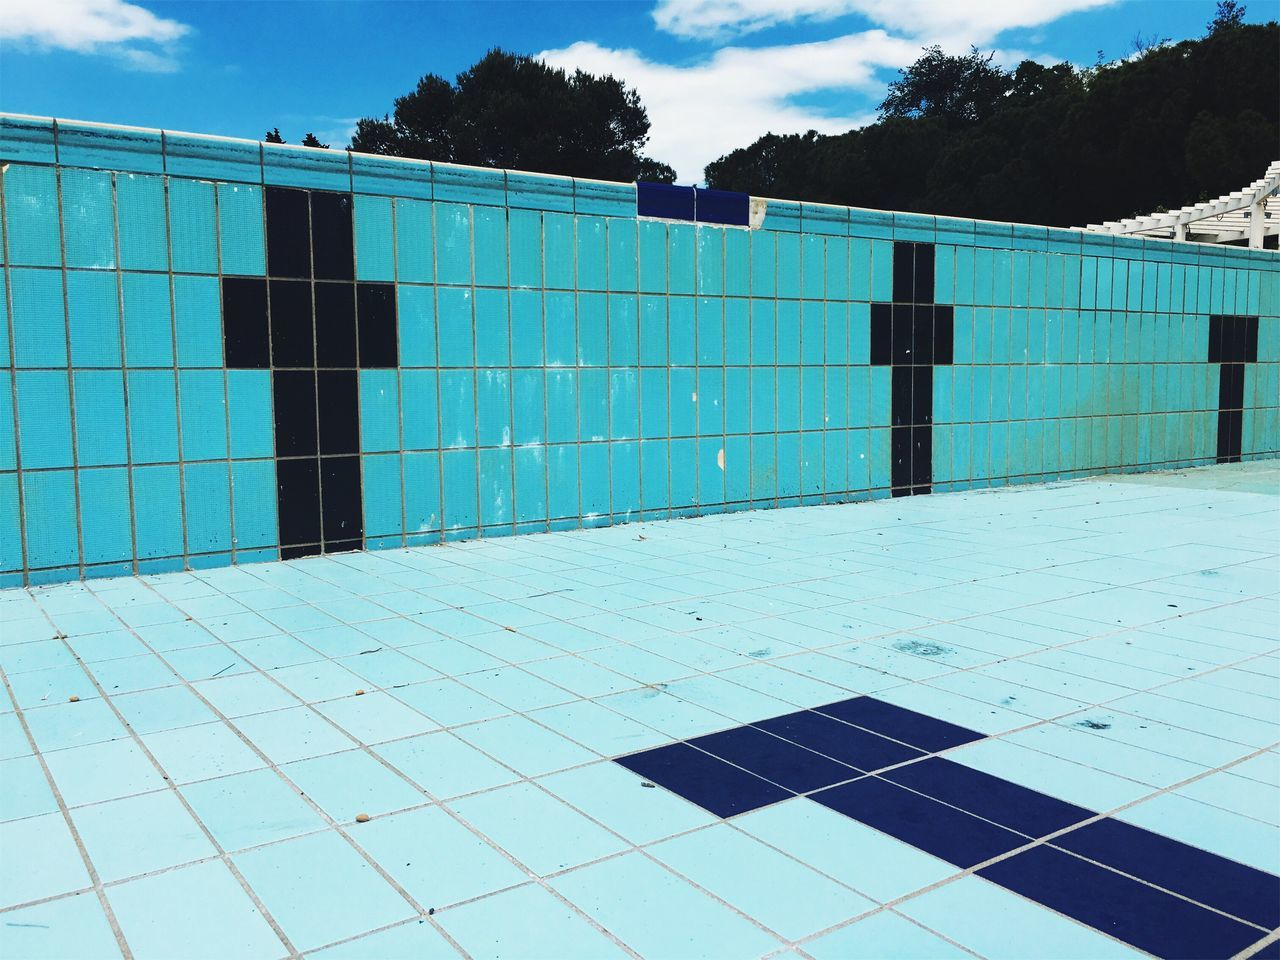 Empty swimming pool. Summertime nostalgia. Swimming Pool Sky Outdoors Tile Day No People Blue Tree Sport Competitive Sport Water Architecture Seaside_collection Tranquility Nostalgia Design Concrete Simple